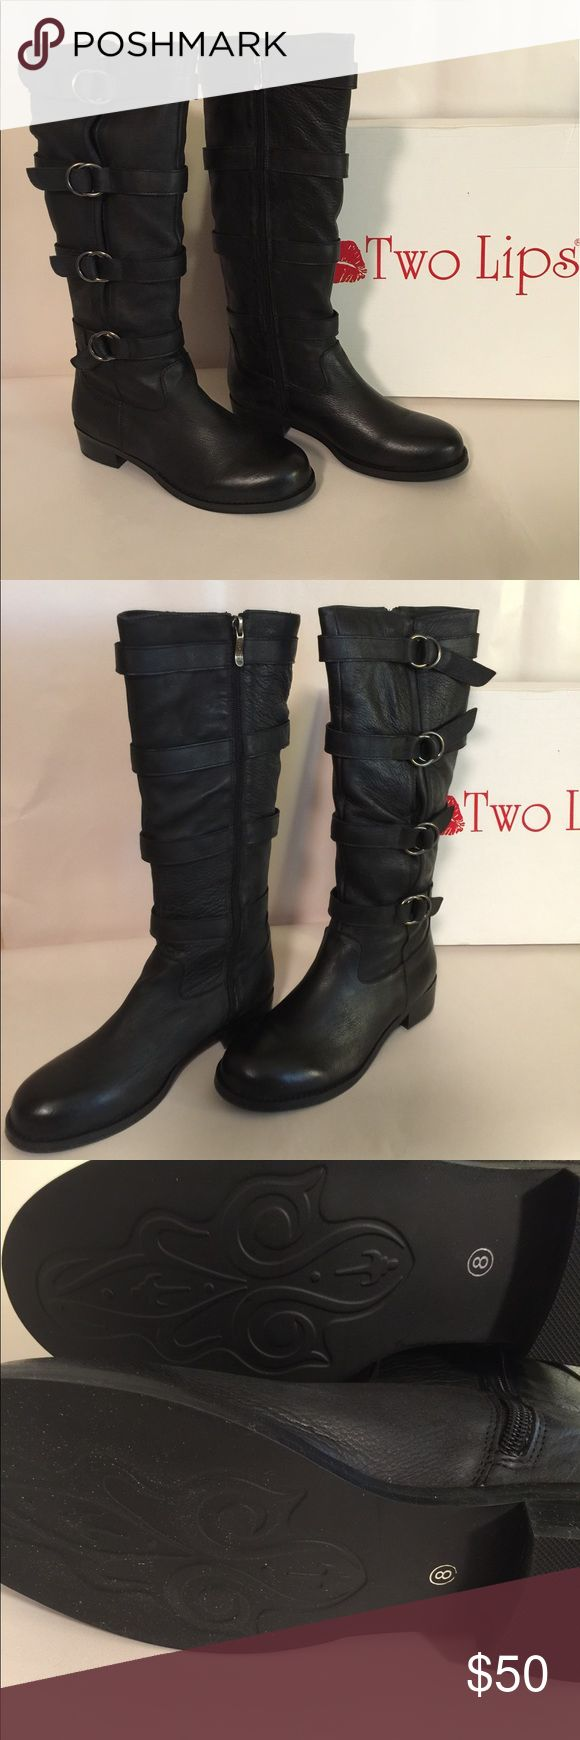 "🆕WOT Two Lips Jaguar Buckle Boots Leather upper with round toe. Man made outsole. Rubber sole. Heel measures 1.25"". Knee high boots. Never worn. Color is Black. Size is 8M. Two Lips Shoes Combat & Moto Boots"